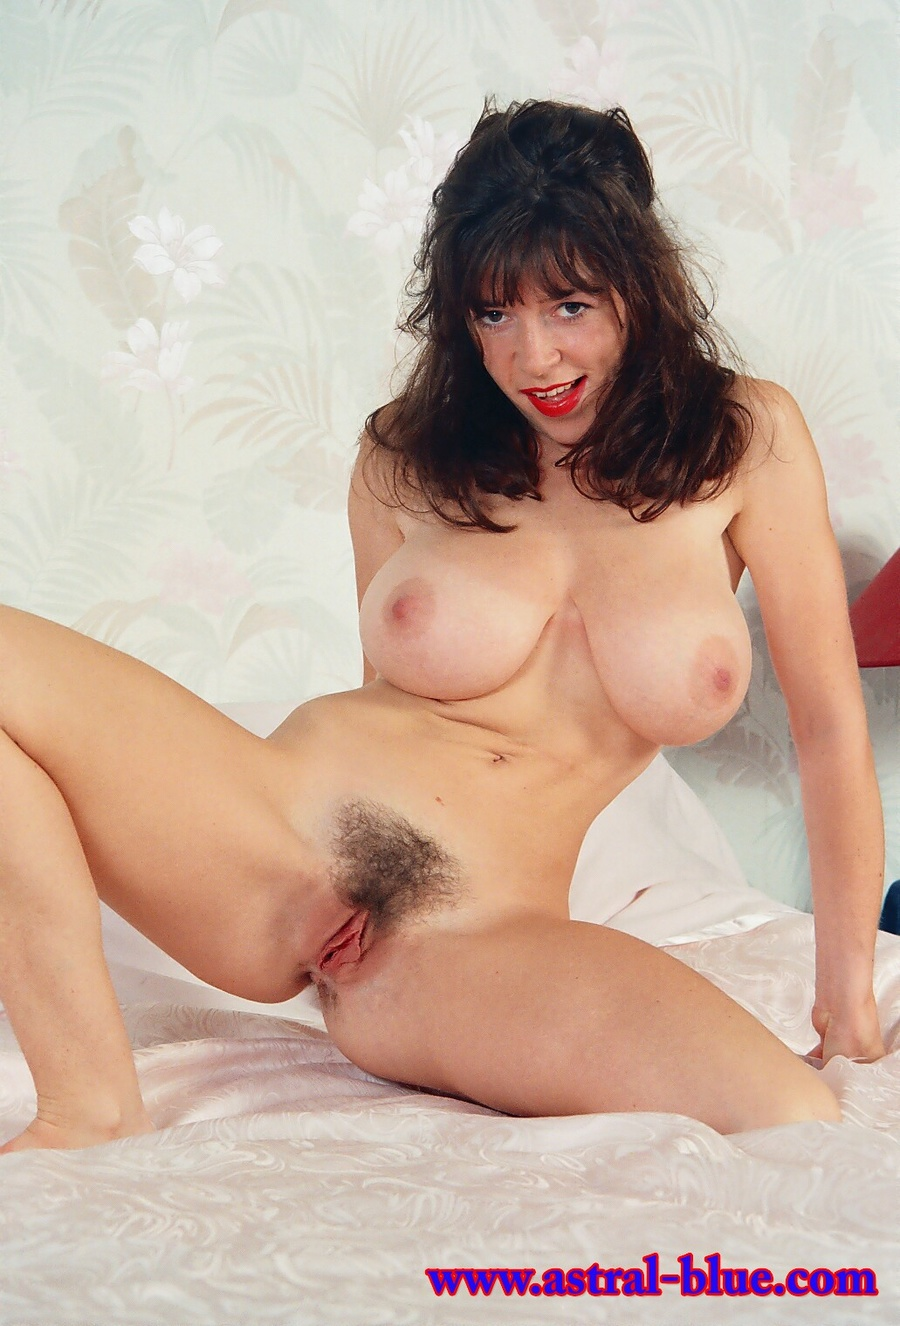 diana wynn big tits uk page 3 girl nude m   xxx dessert   picture 3